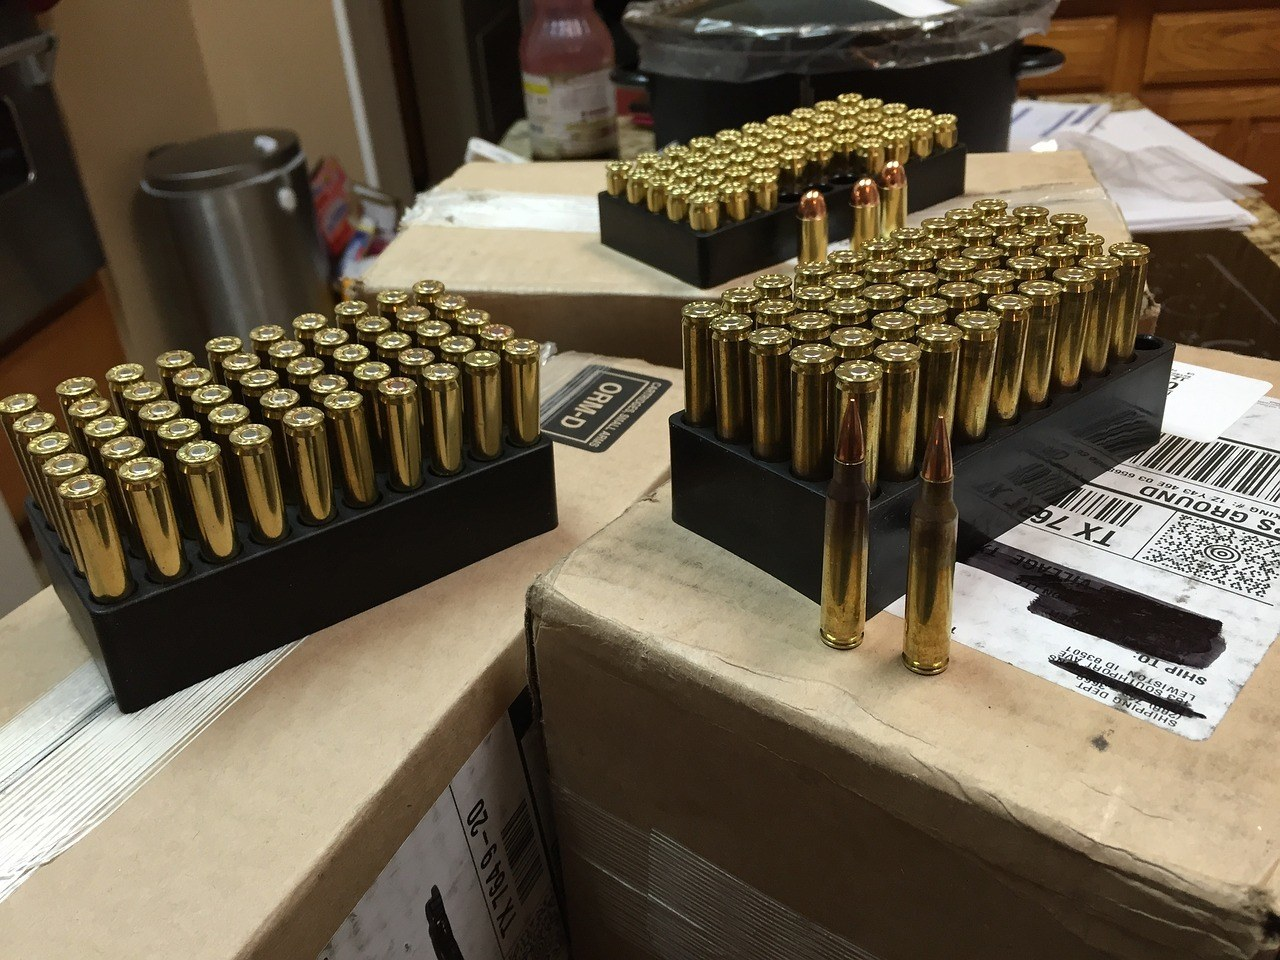 assorted ammo for hunting in the table